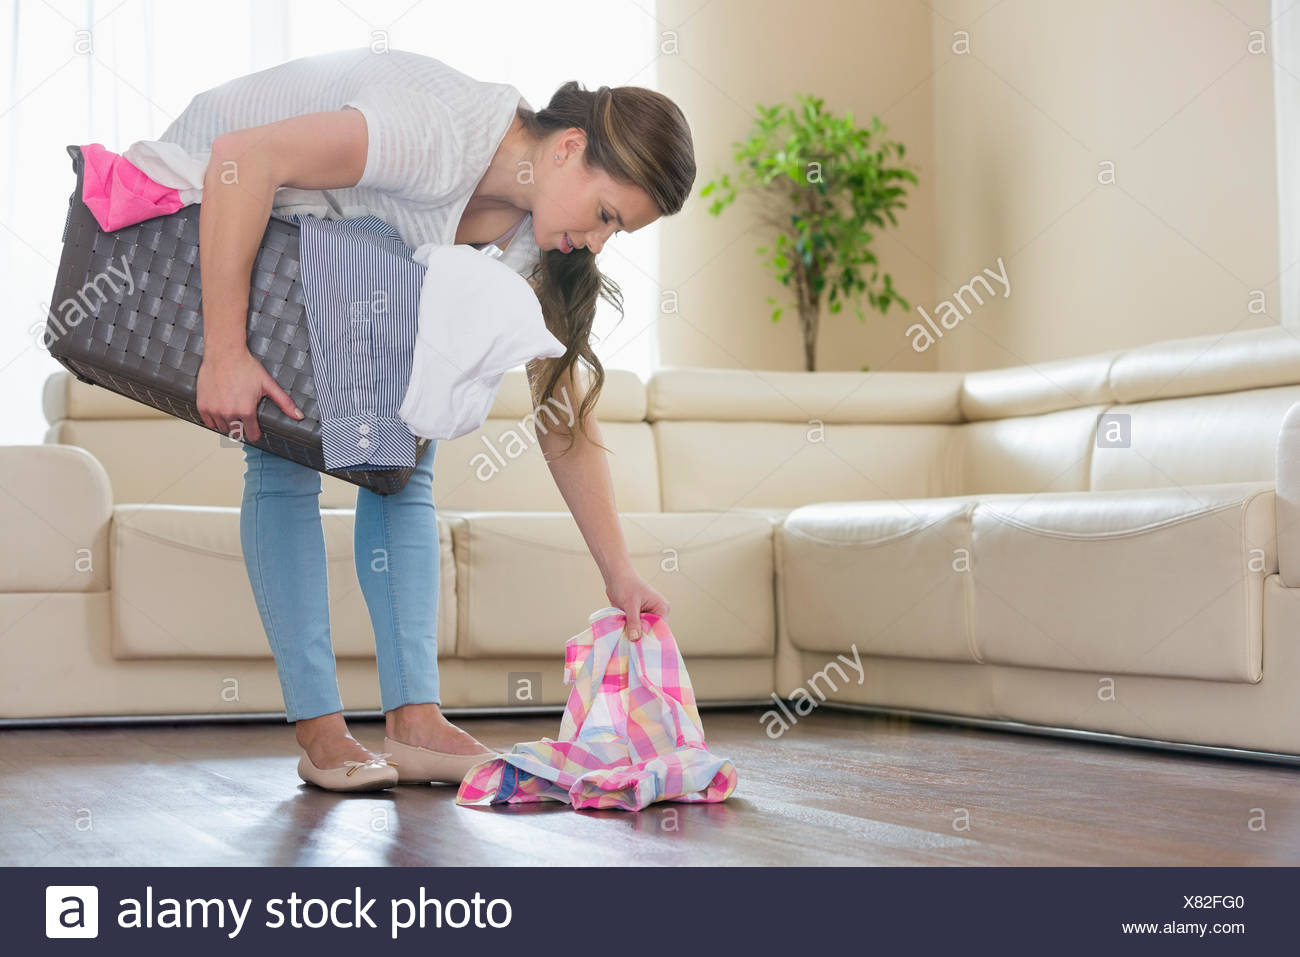 Woman with laundry basket picking clothes from floor in living room - Stock Image